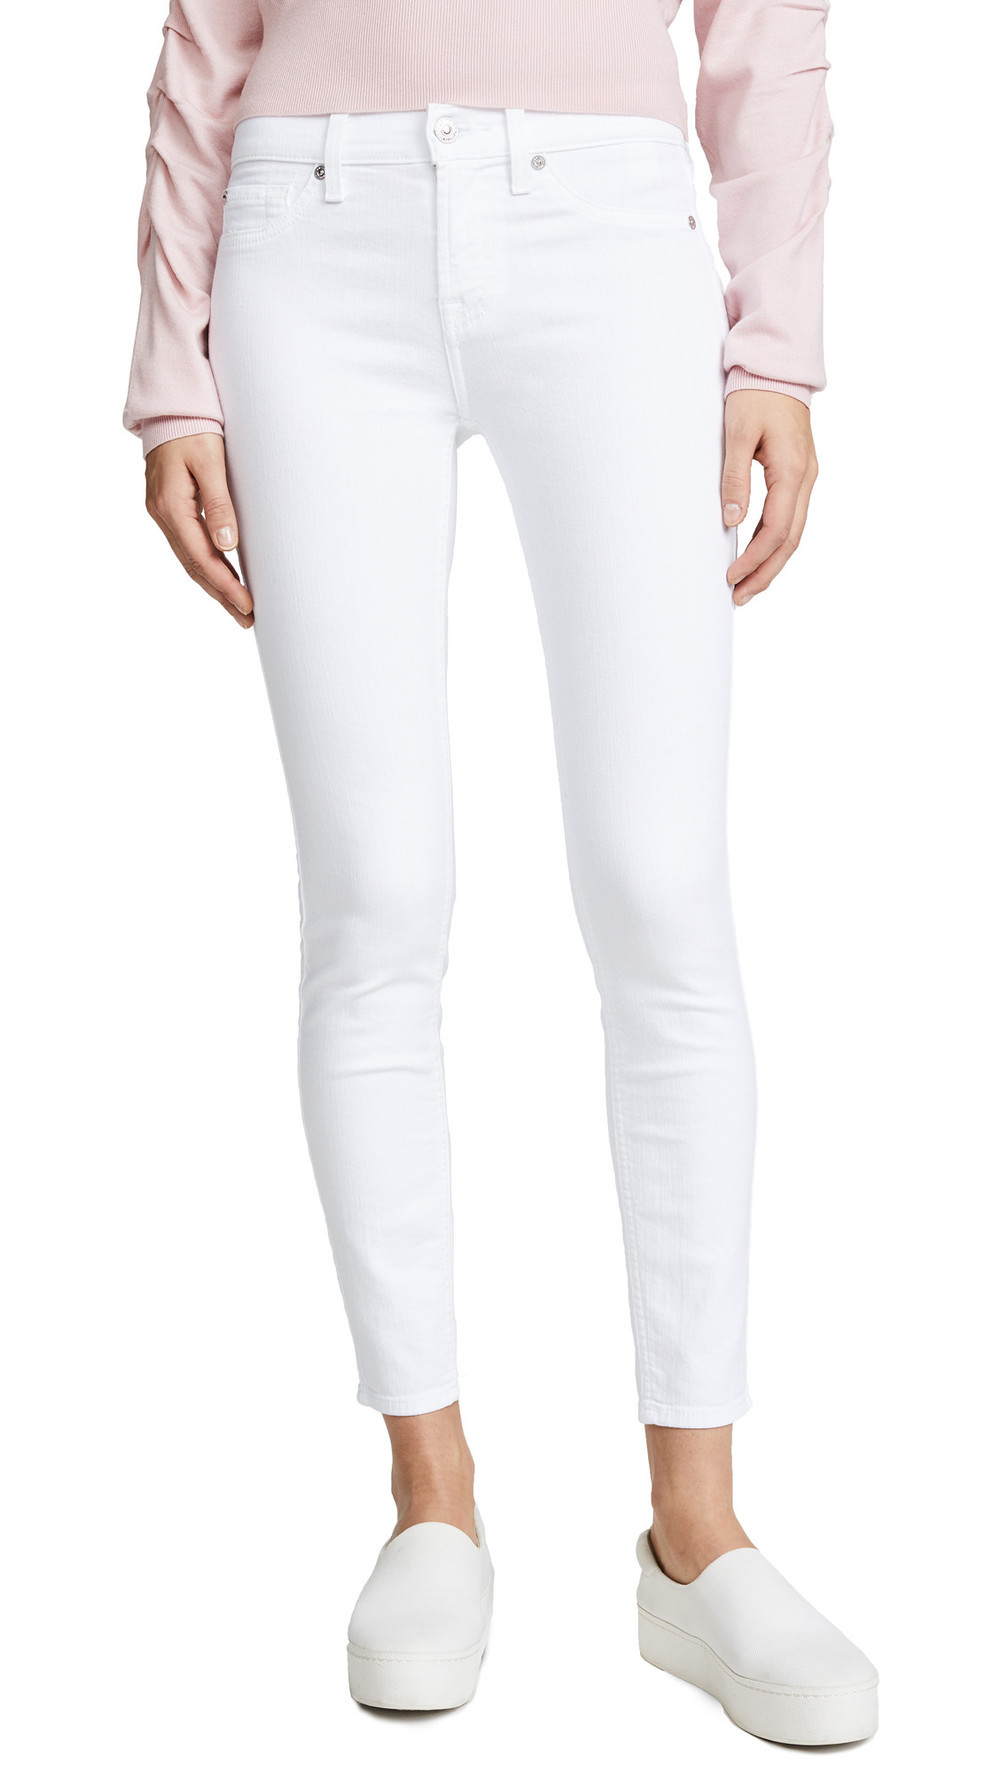 7 For All Mankind Skinny Ankle Jeans in white